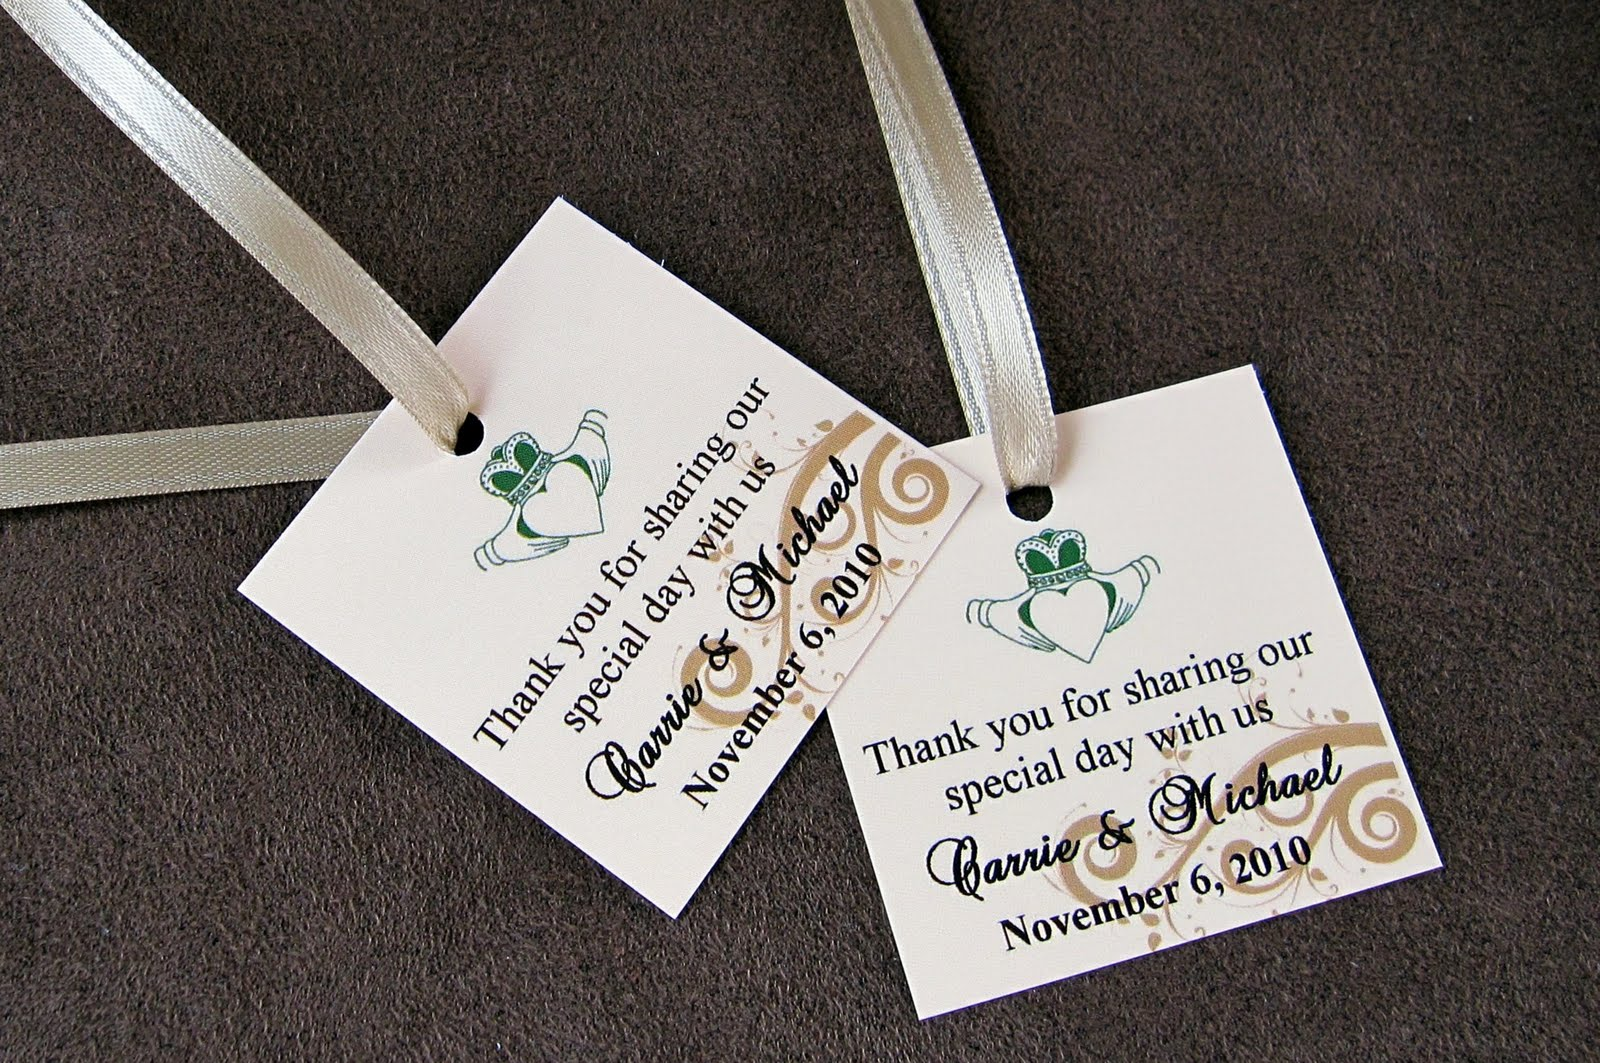 Scrapping Innovations: Carrie and Michael\'s Wedding Bookmarks and ...